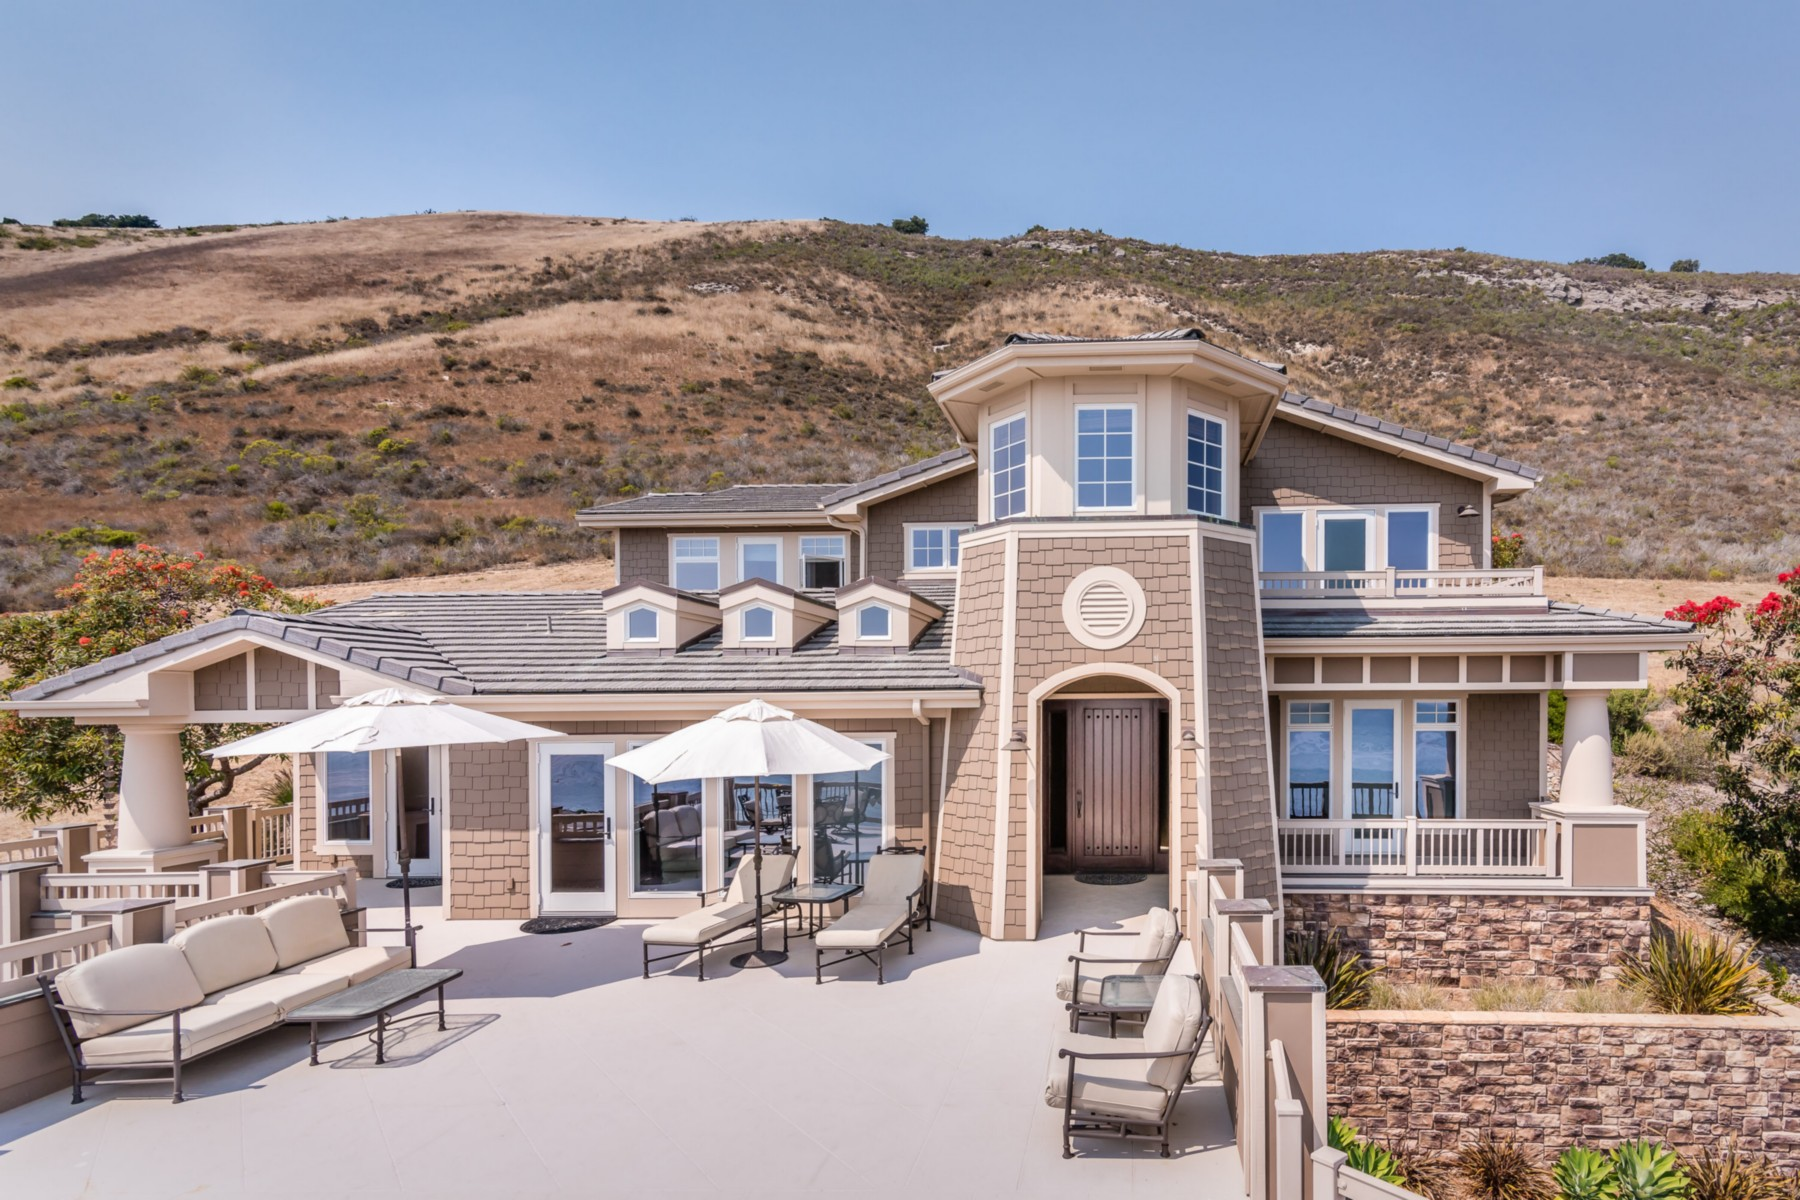 Single Family Home for Sale at Lavish Oceanfront Estate 122 Bluff Dr. Pismo Beach, California, 93420 United States